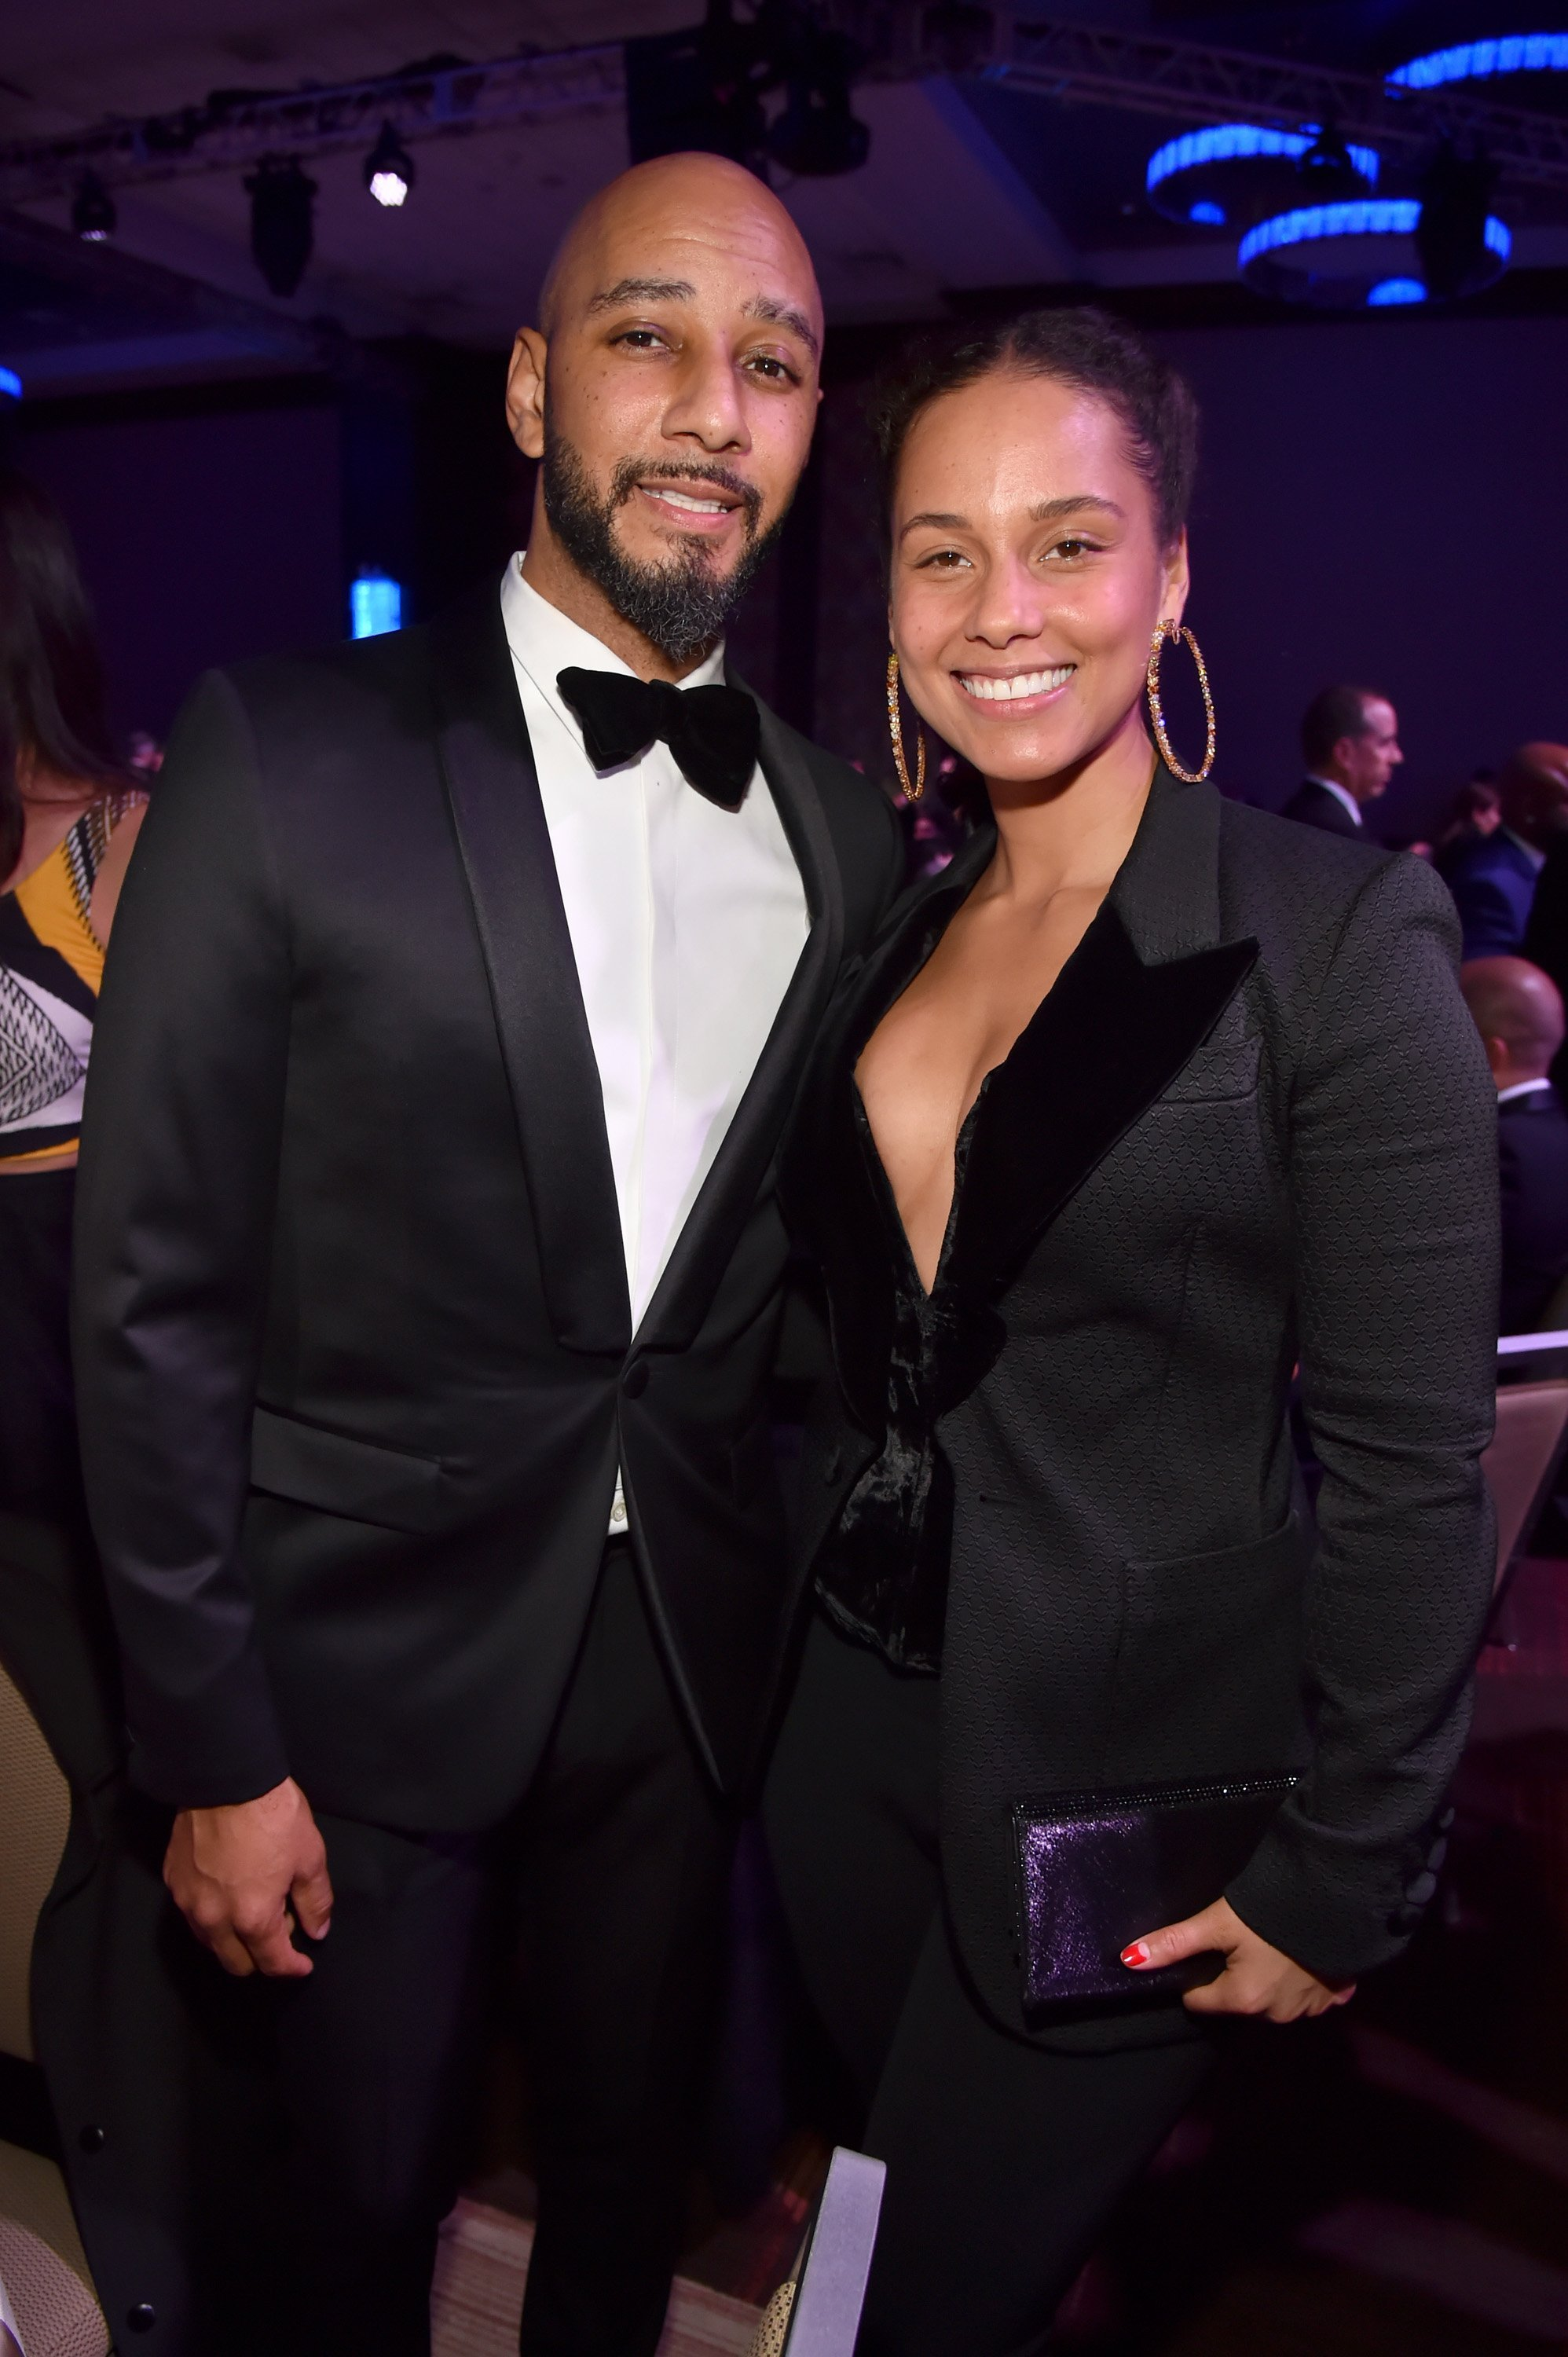 Swiss Beatz and Alicia Keys at a Pre-Grammy gala in January 2018. | Photo: Getty Images